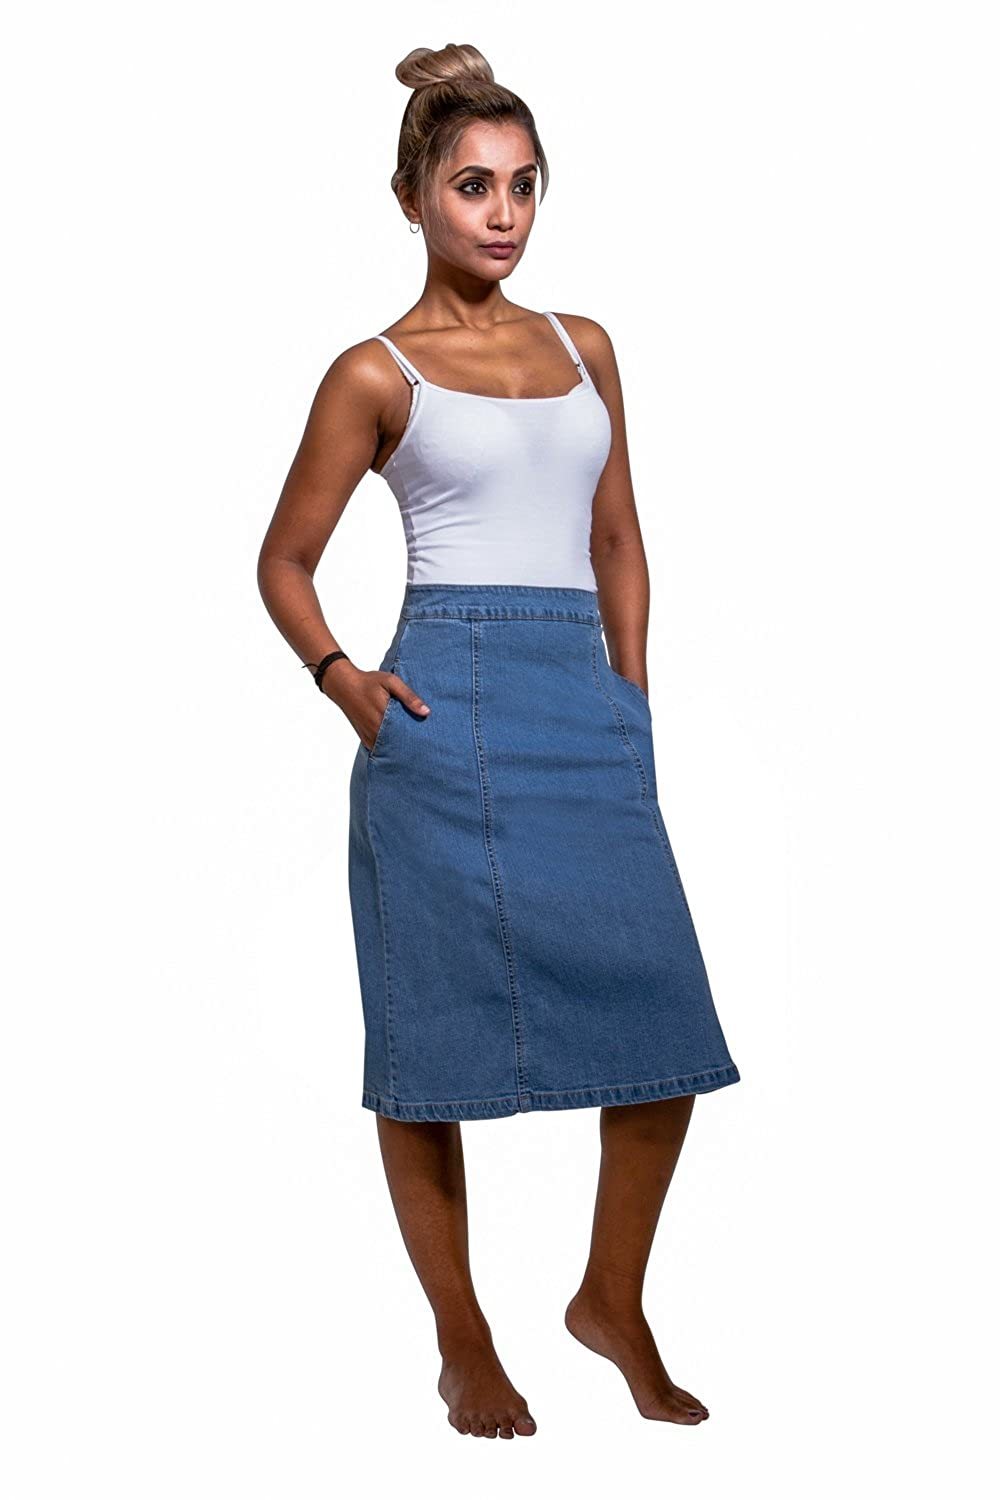 d42efe543d Uskees Molly Mid-Length Denim Skirt - Palewash Panelled Jean Skirt with  Stretch MOLLYPW: Amazon.co.uk: Clothing